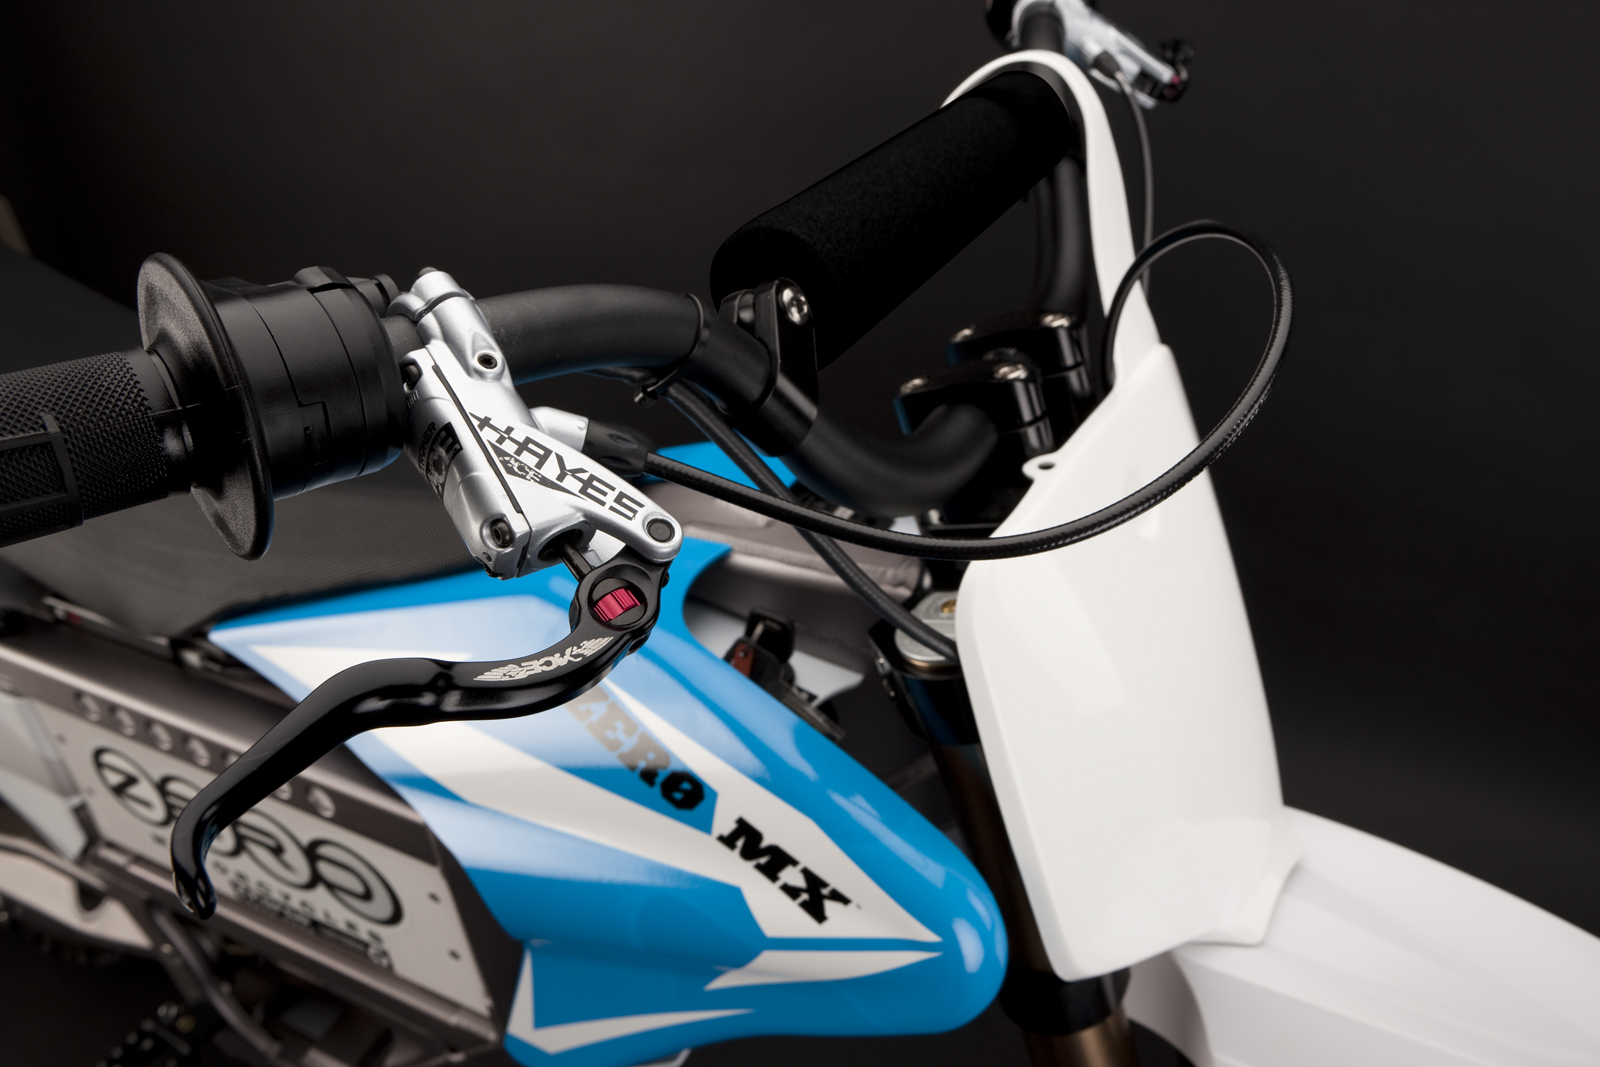 2010 Zero MX Electric Motorcycle: Front Brake Hand